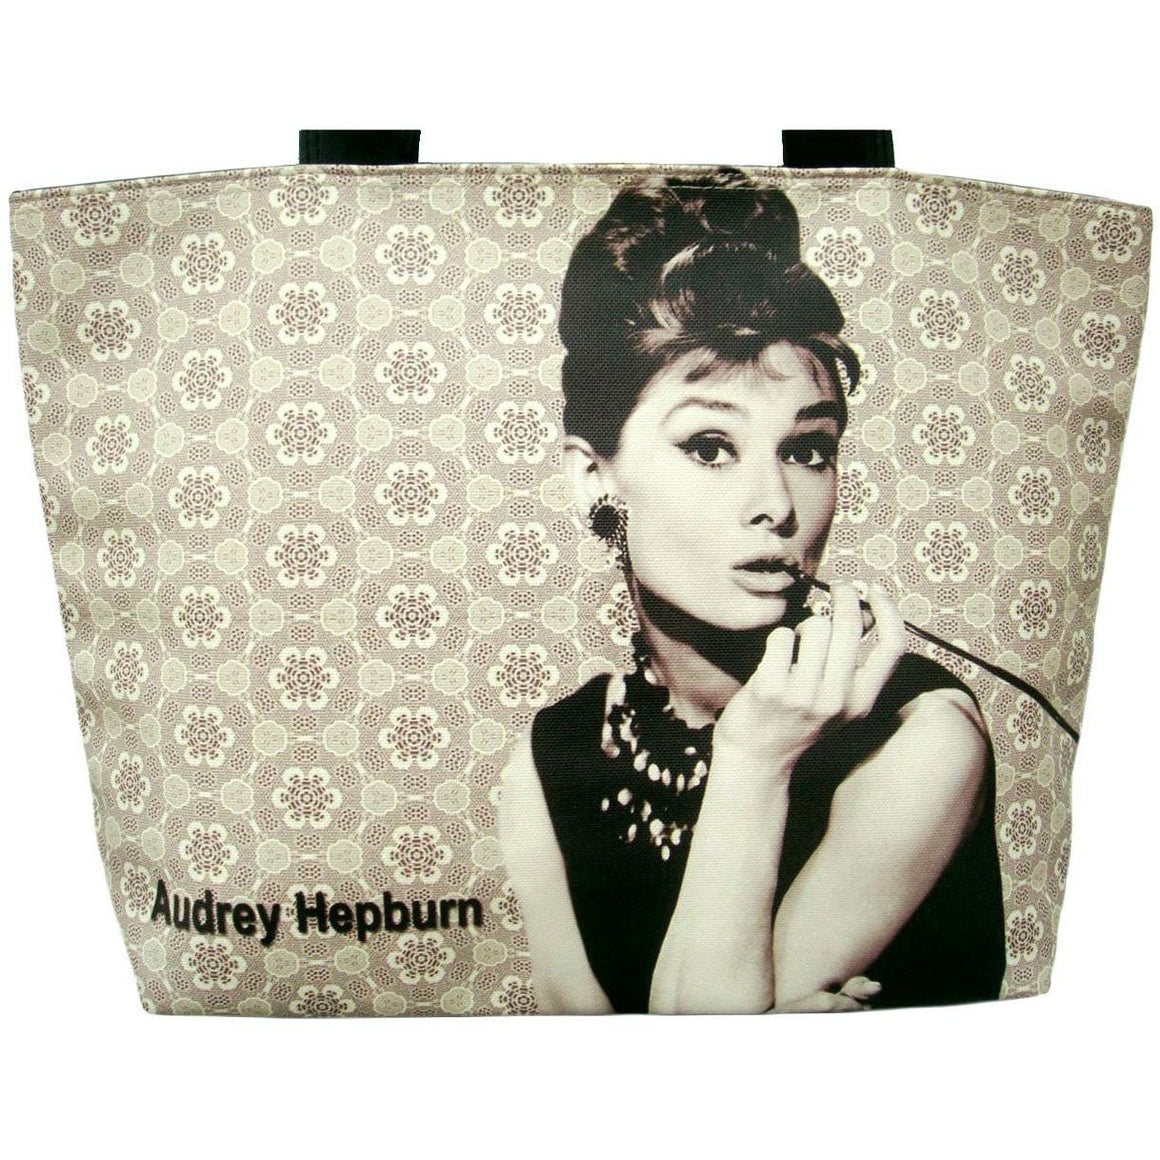 Audrey Hepburn Breakfast At Tiffany's Classic Bag Purse Handbag - SilverMania925